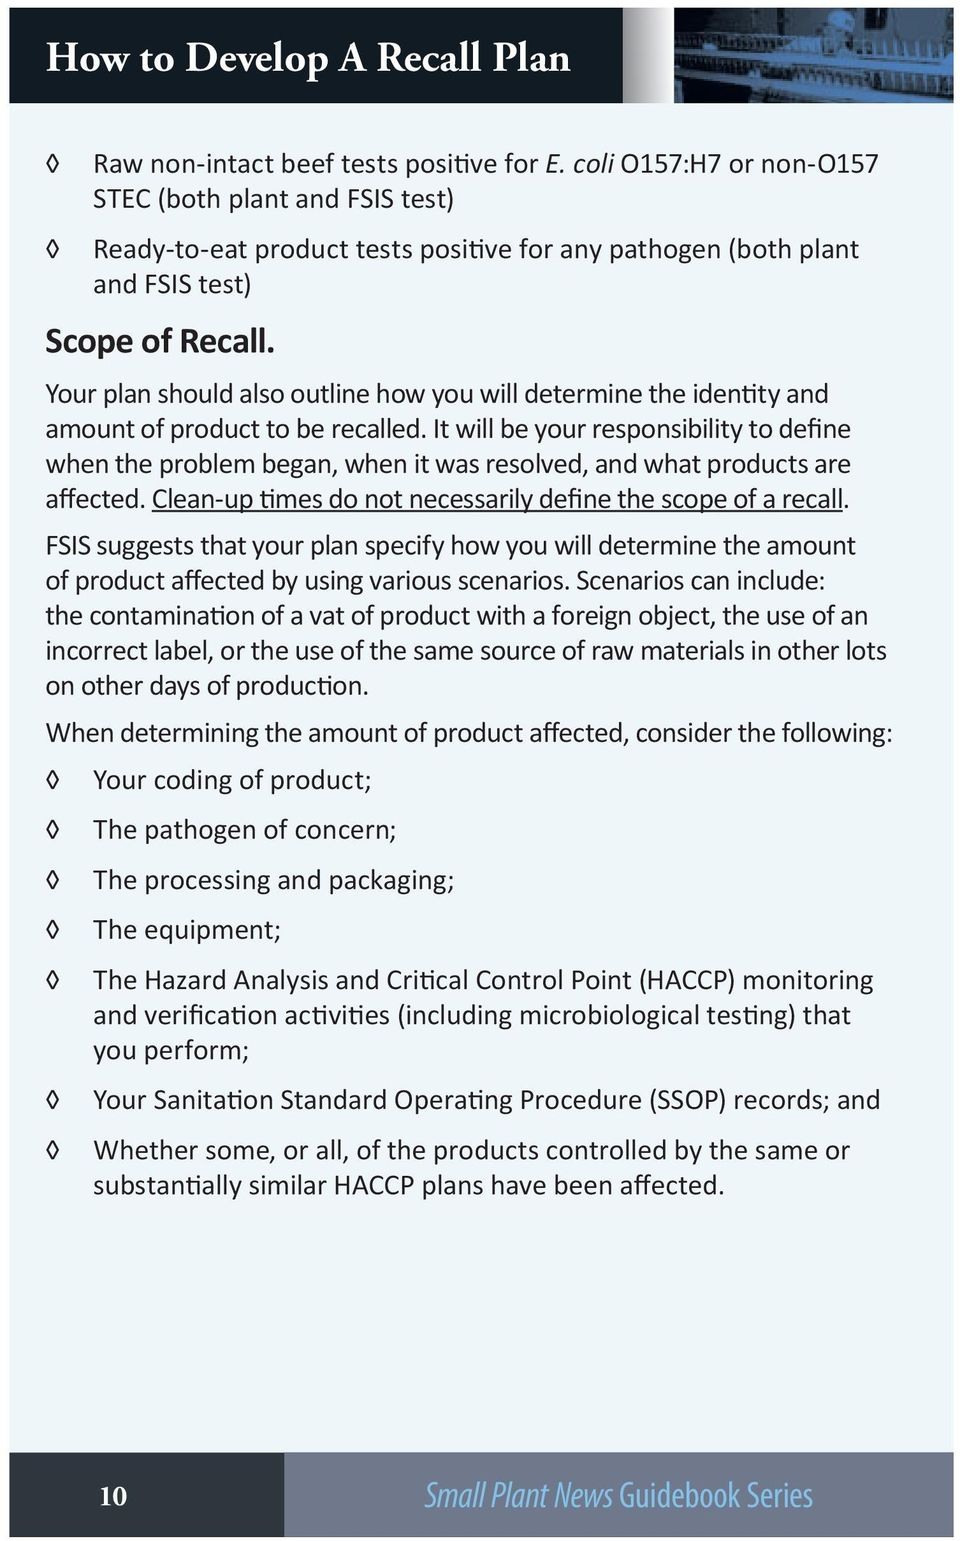 Your plan should also outline how you will determine the identity and amount of product to be recalled.